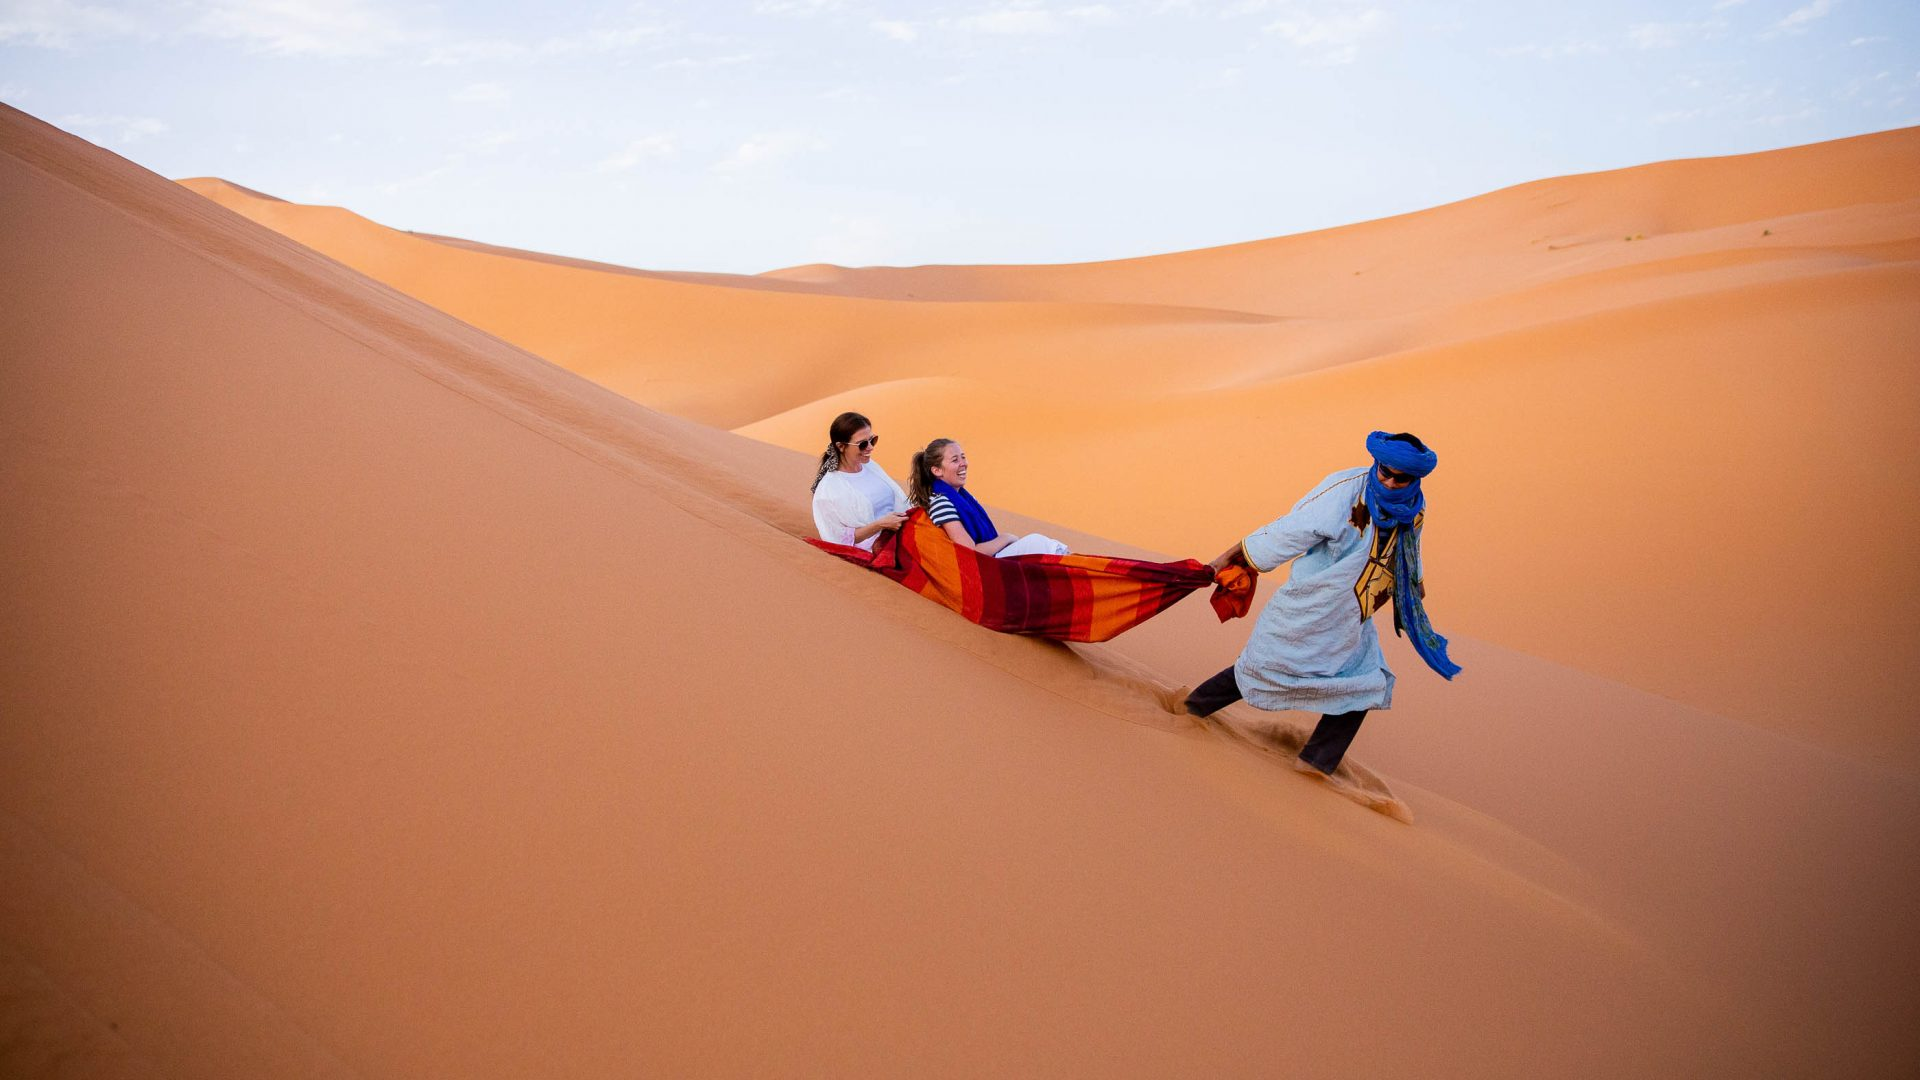 Someone pulling travelers on a rug down a dune in the Sahara.